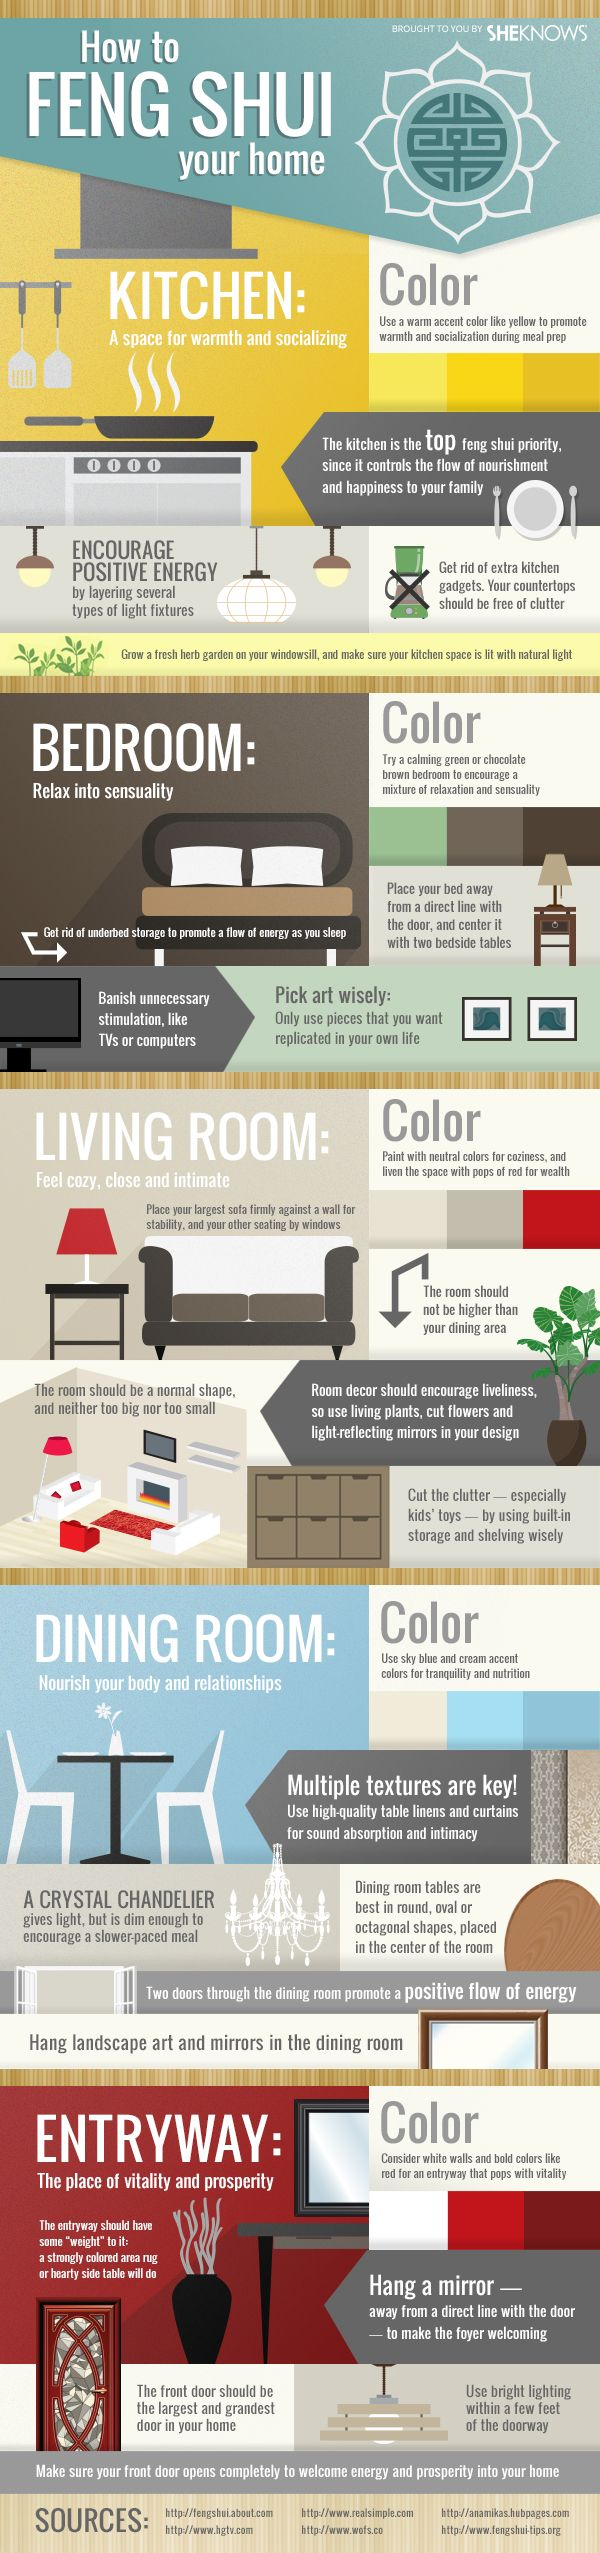 A room-by-room guide to feng shui your home.  | Robyn Porter, REALTOR | Your Real Estate Agent for Life® | Washington DC metro area | call/text 703-963-0142; email robyn@robynporter.com | #infographic